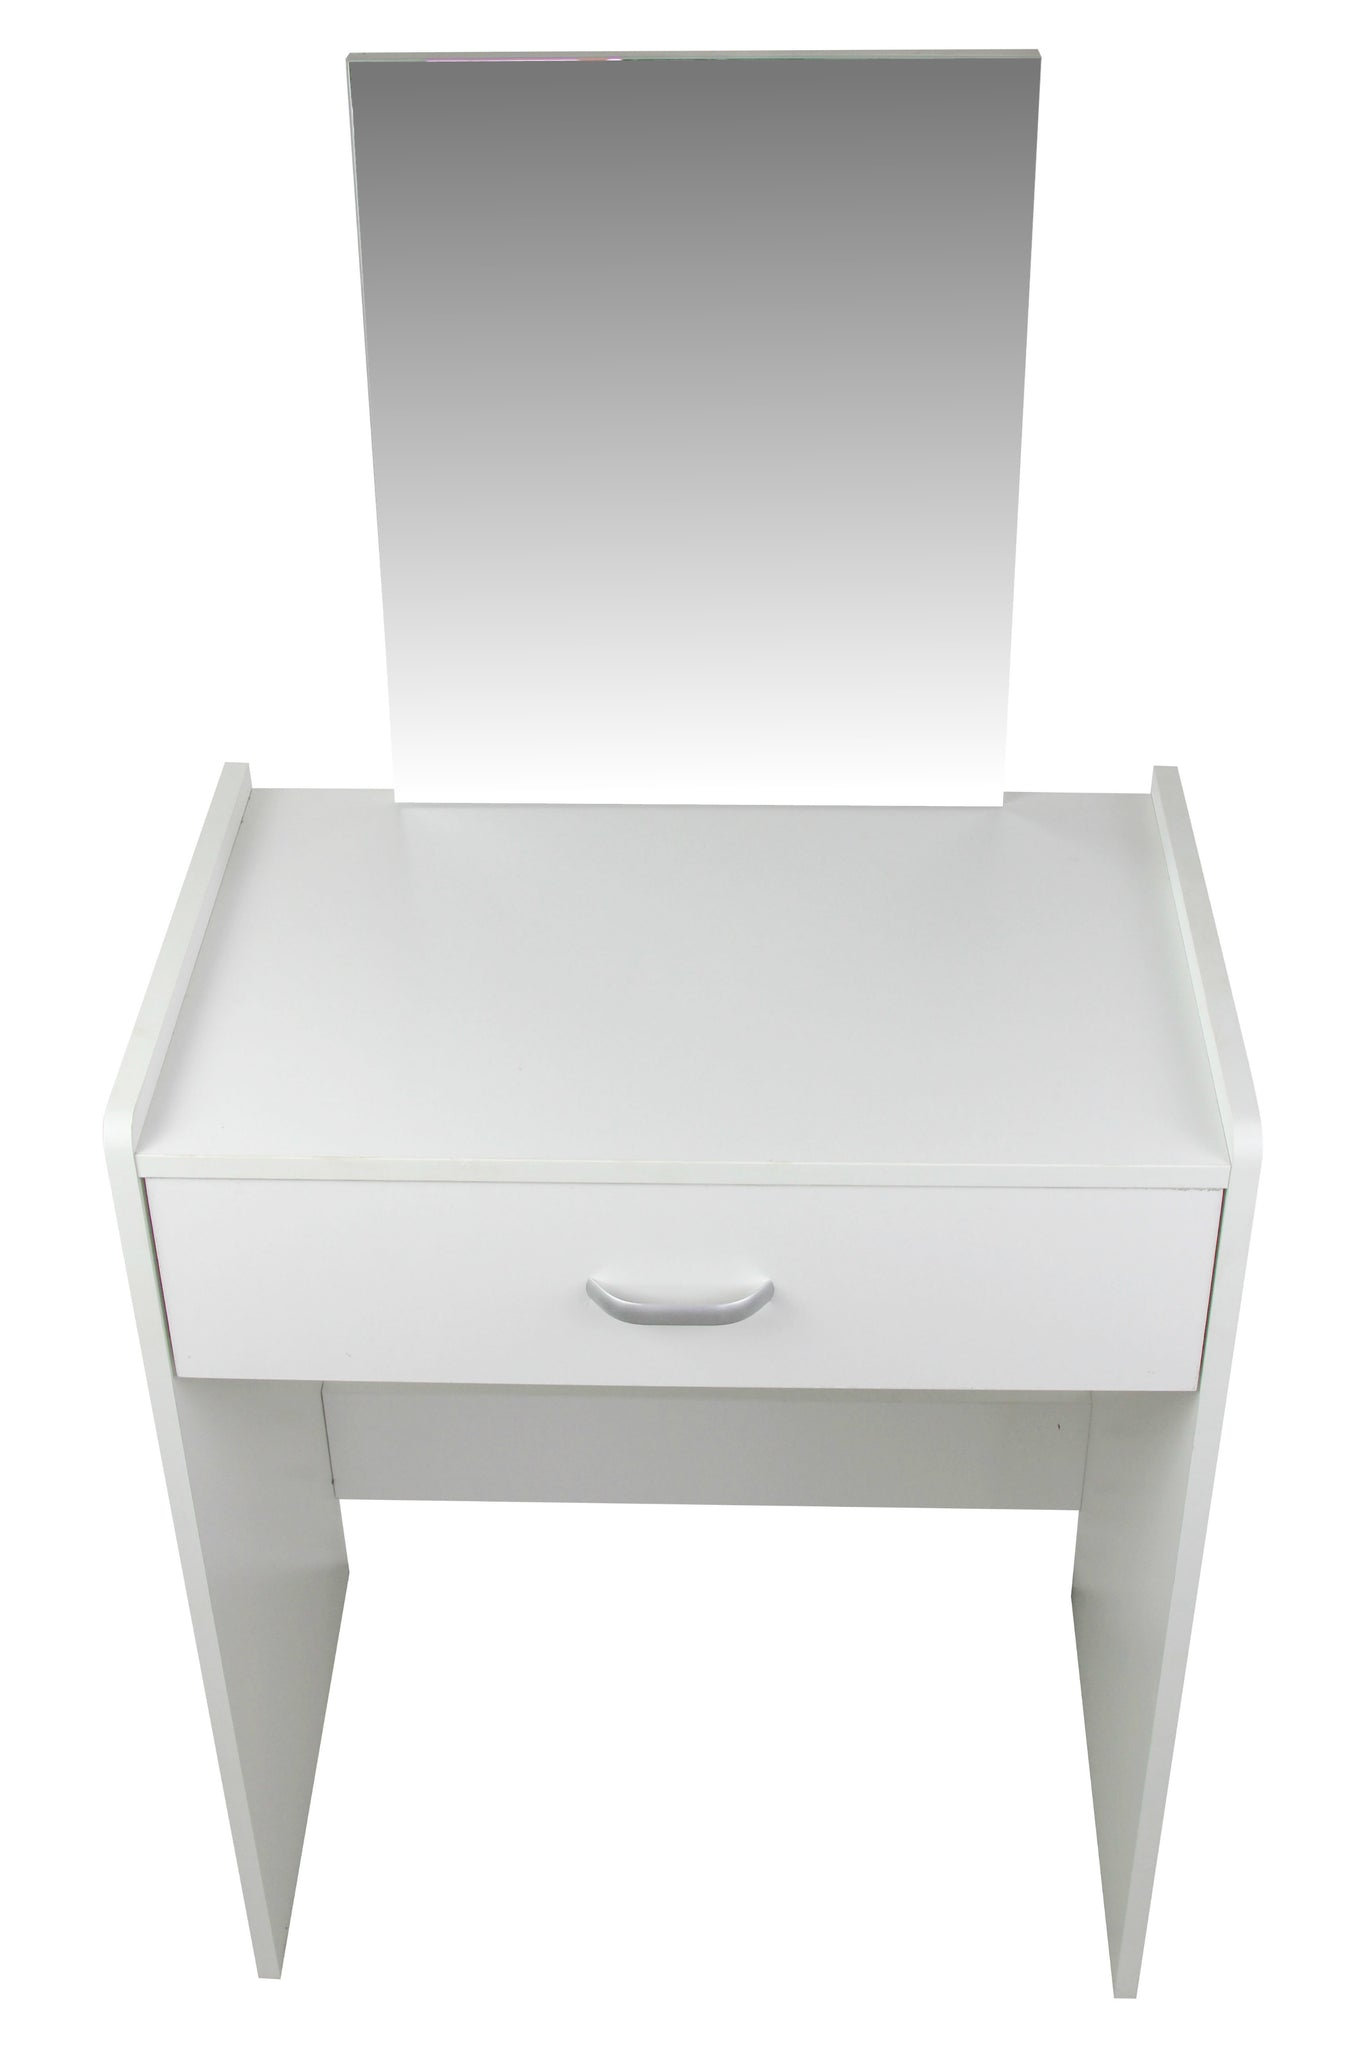 Dressing Table With Mirror And Stool: White Modern Dressing Table With Mirror And Stool